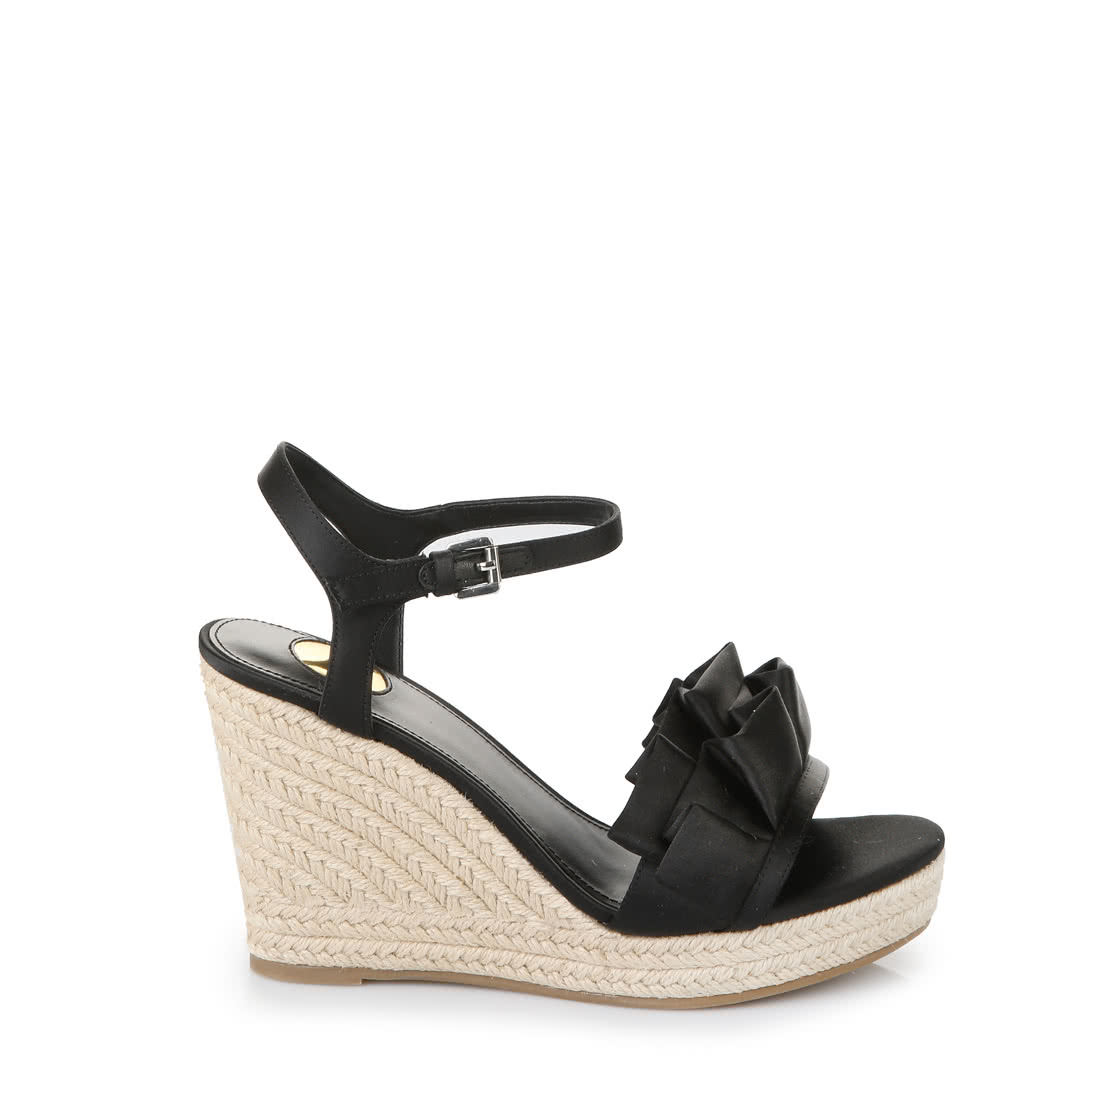 9b3d4c301fc Buffalo wedge sandals with frills in black buy online in BUFFALO ...